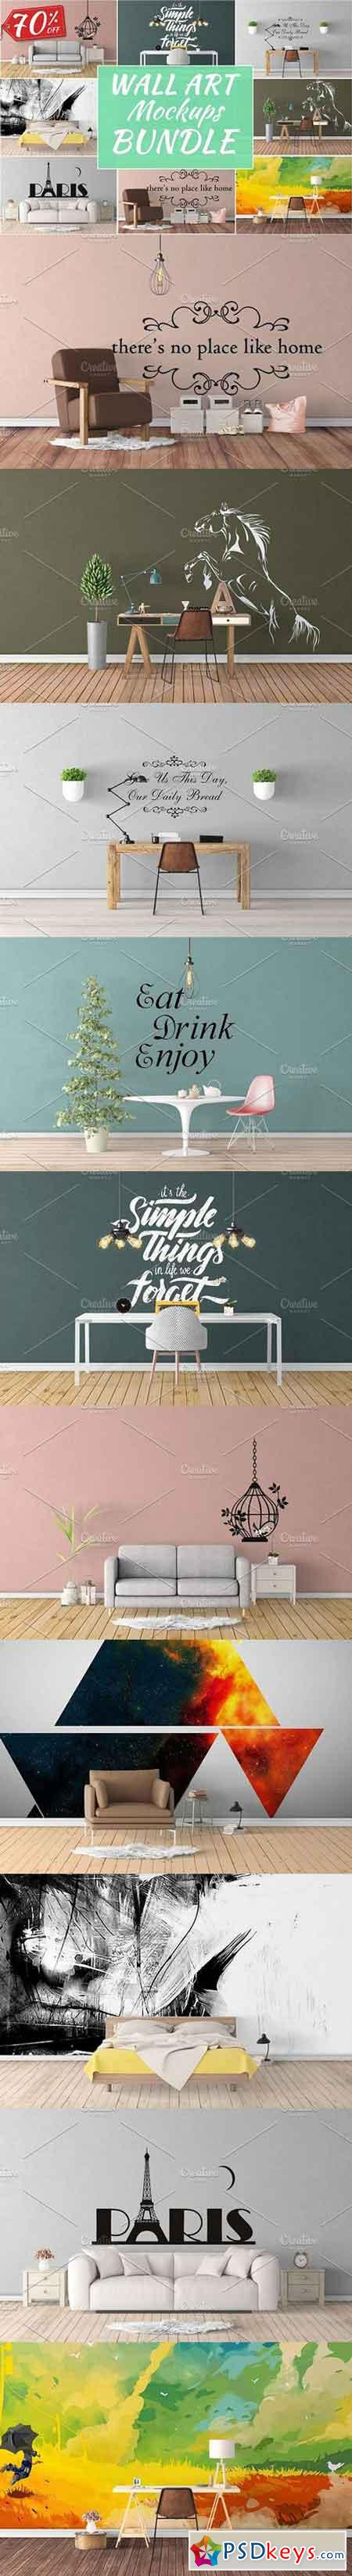 Wall Art Mockups BUNDLE V18 1146698 » Free Download Photoshop Vector